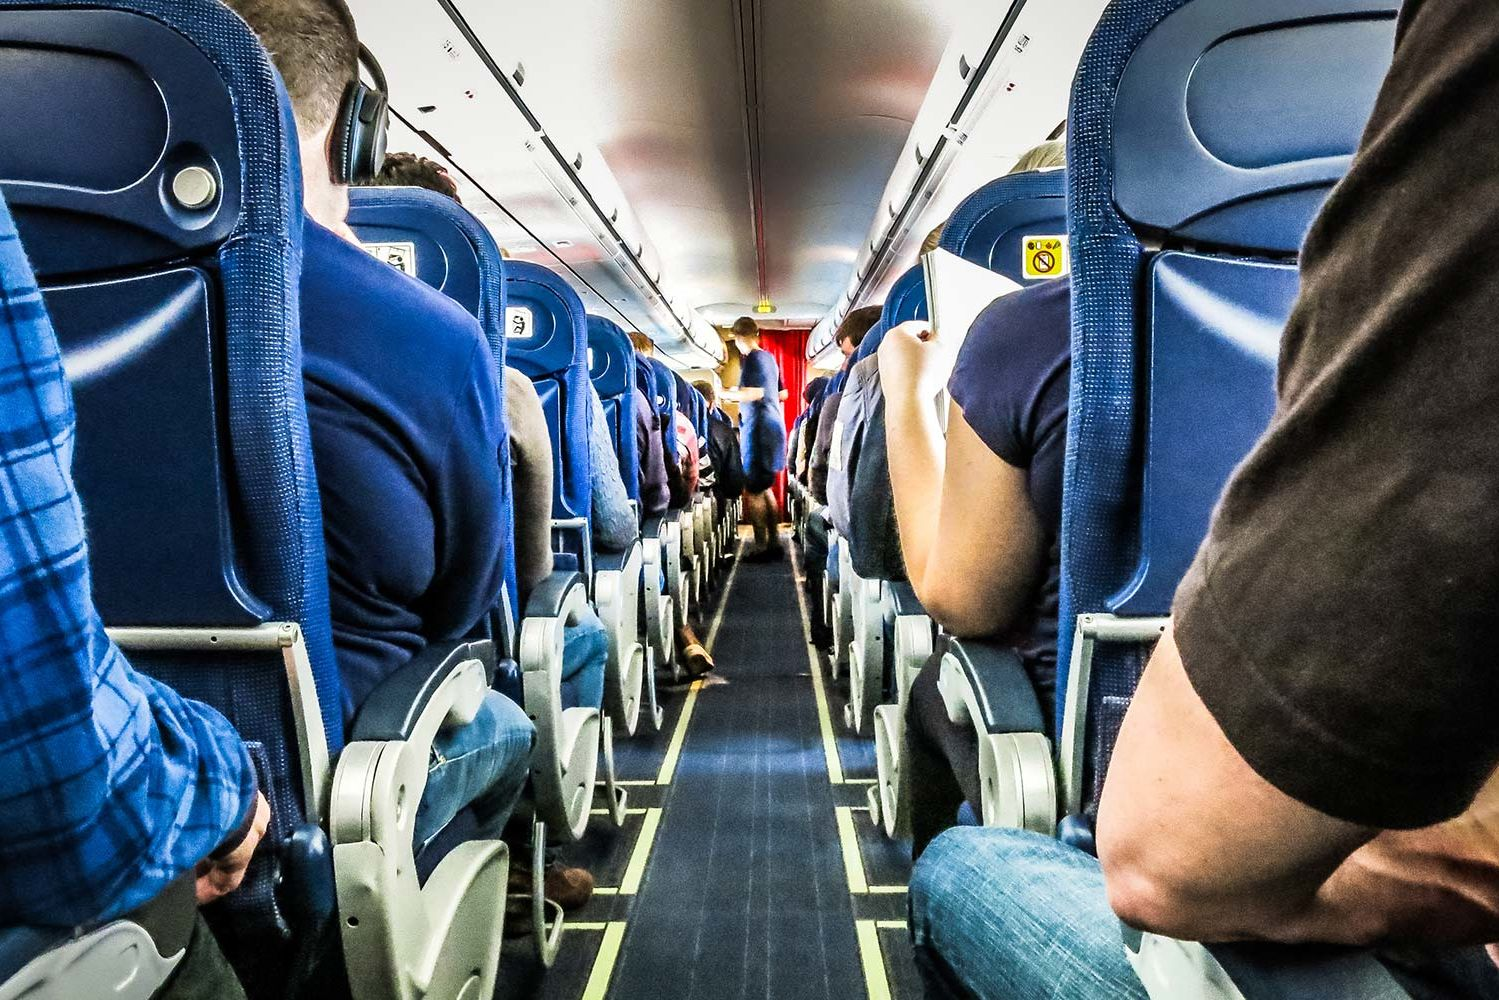 Flying With Your Family or Girlfriends? Here's How to Make Sure You Sit Together